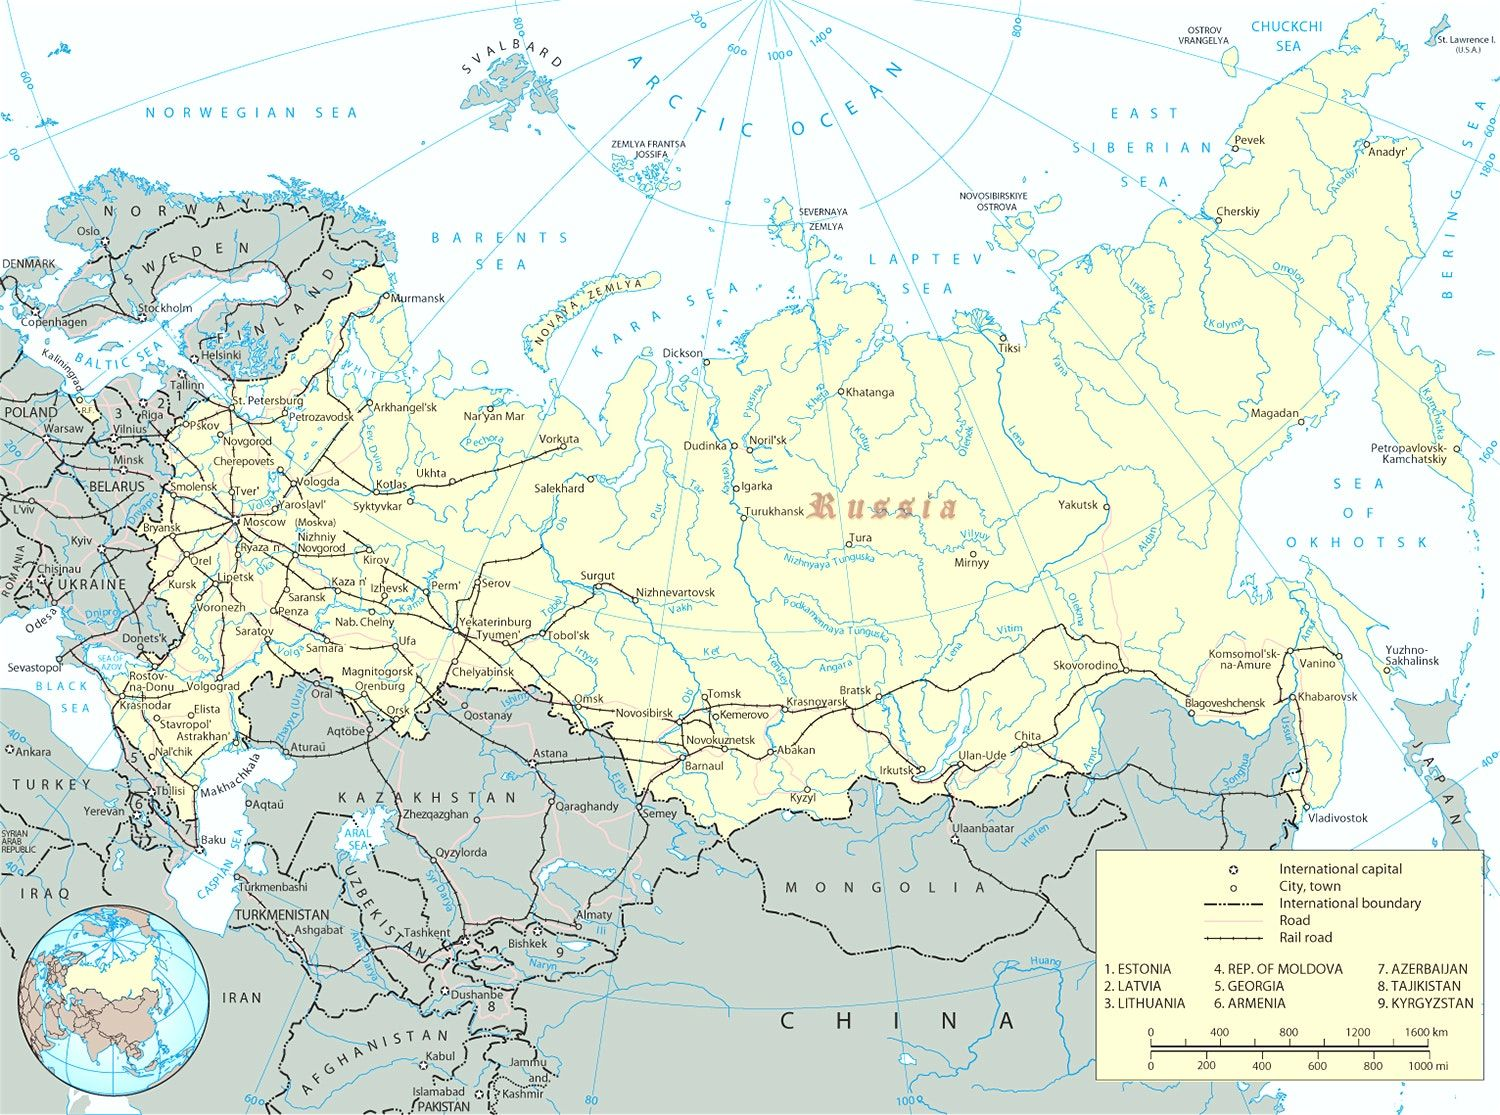 Russia Map Russian Federation Europe And Of With Cities Rivers In ...